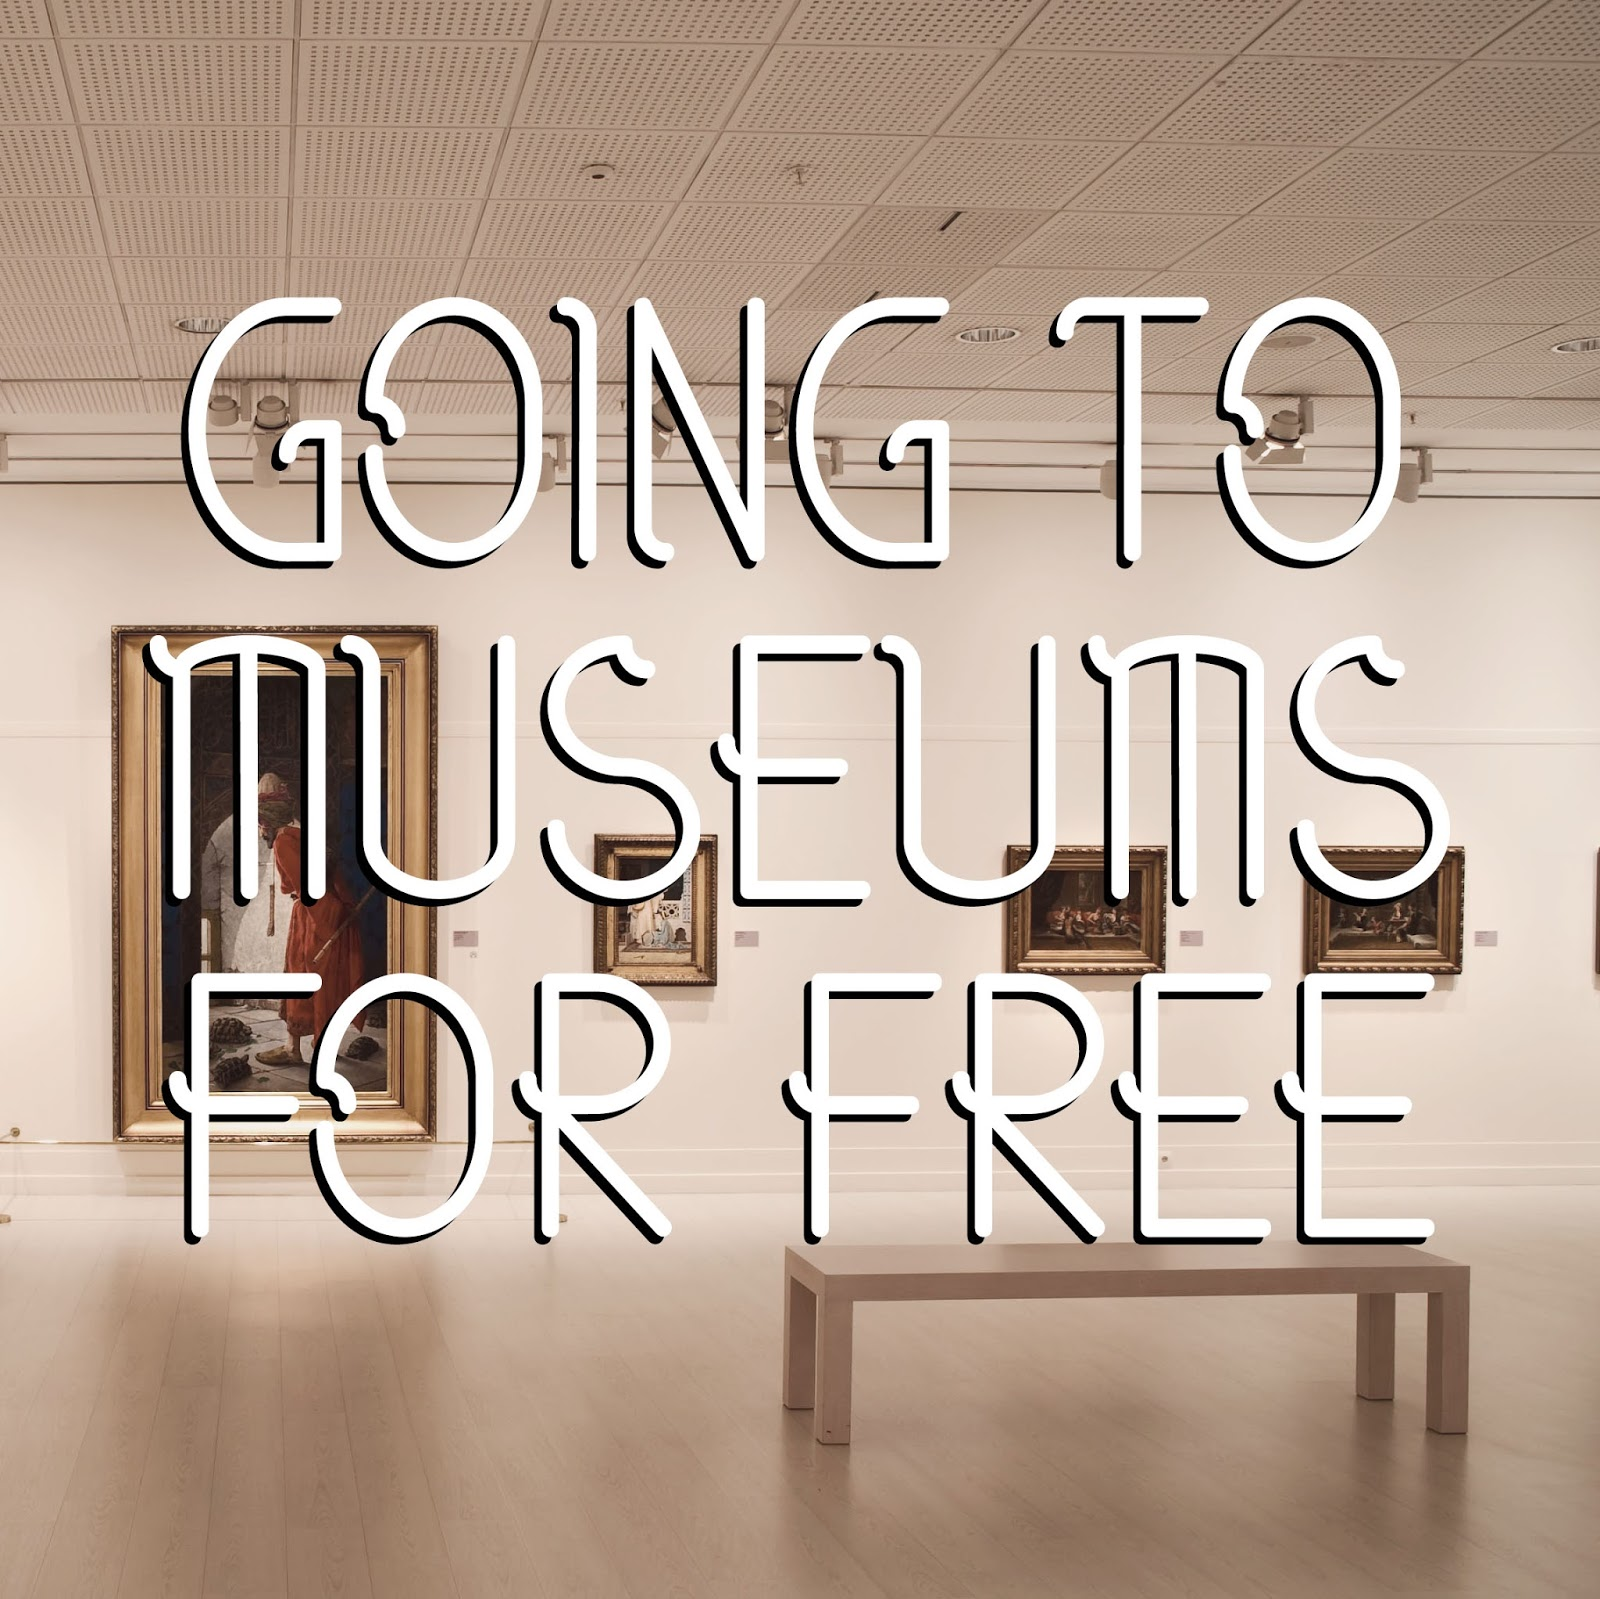 How to visit museums for free - a frugal traveler's guide! http://www.theartofcheaptravel.com/2014/08/free-museums.html